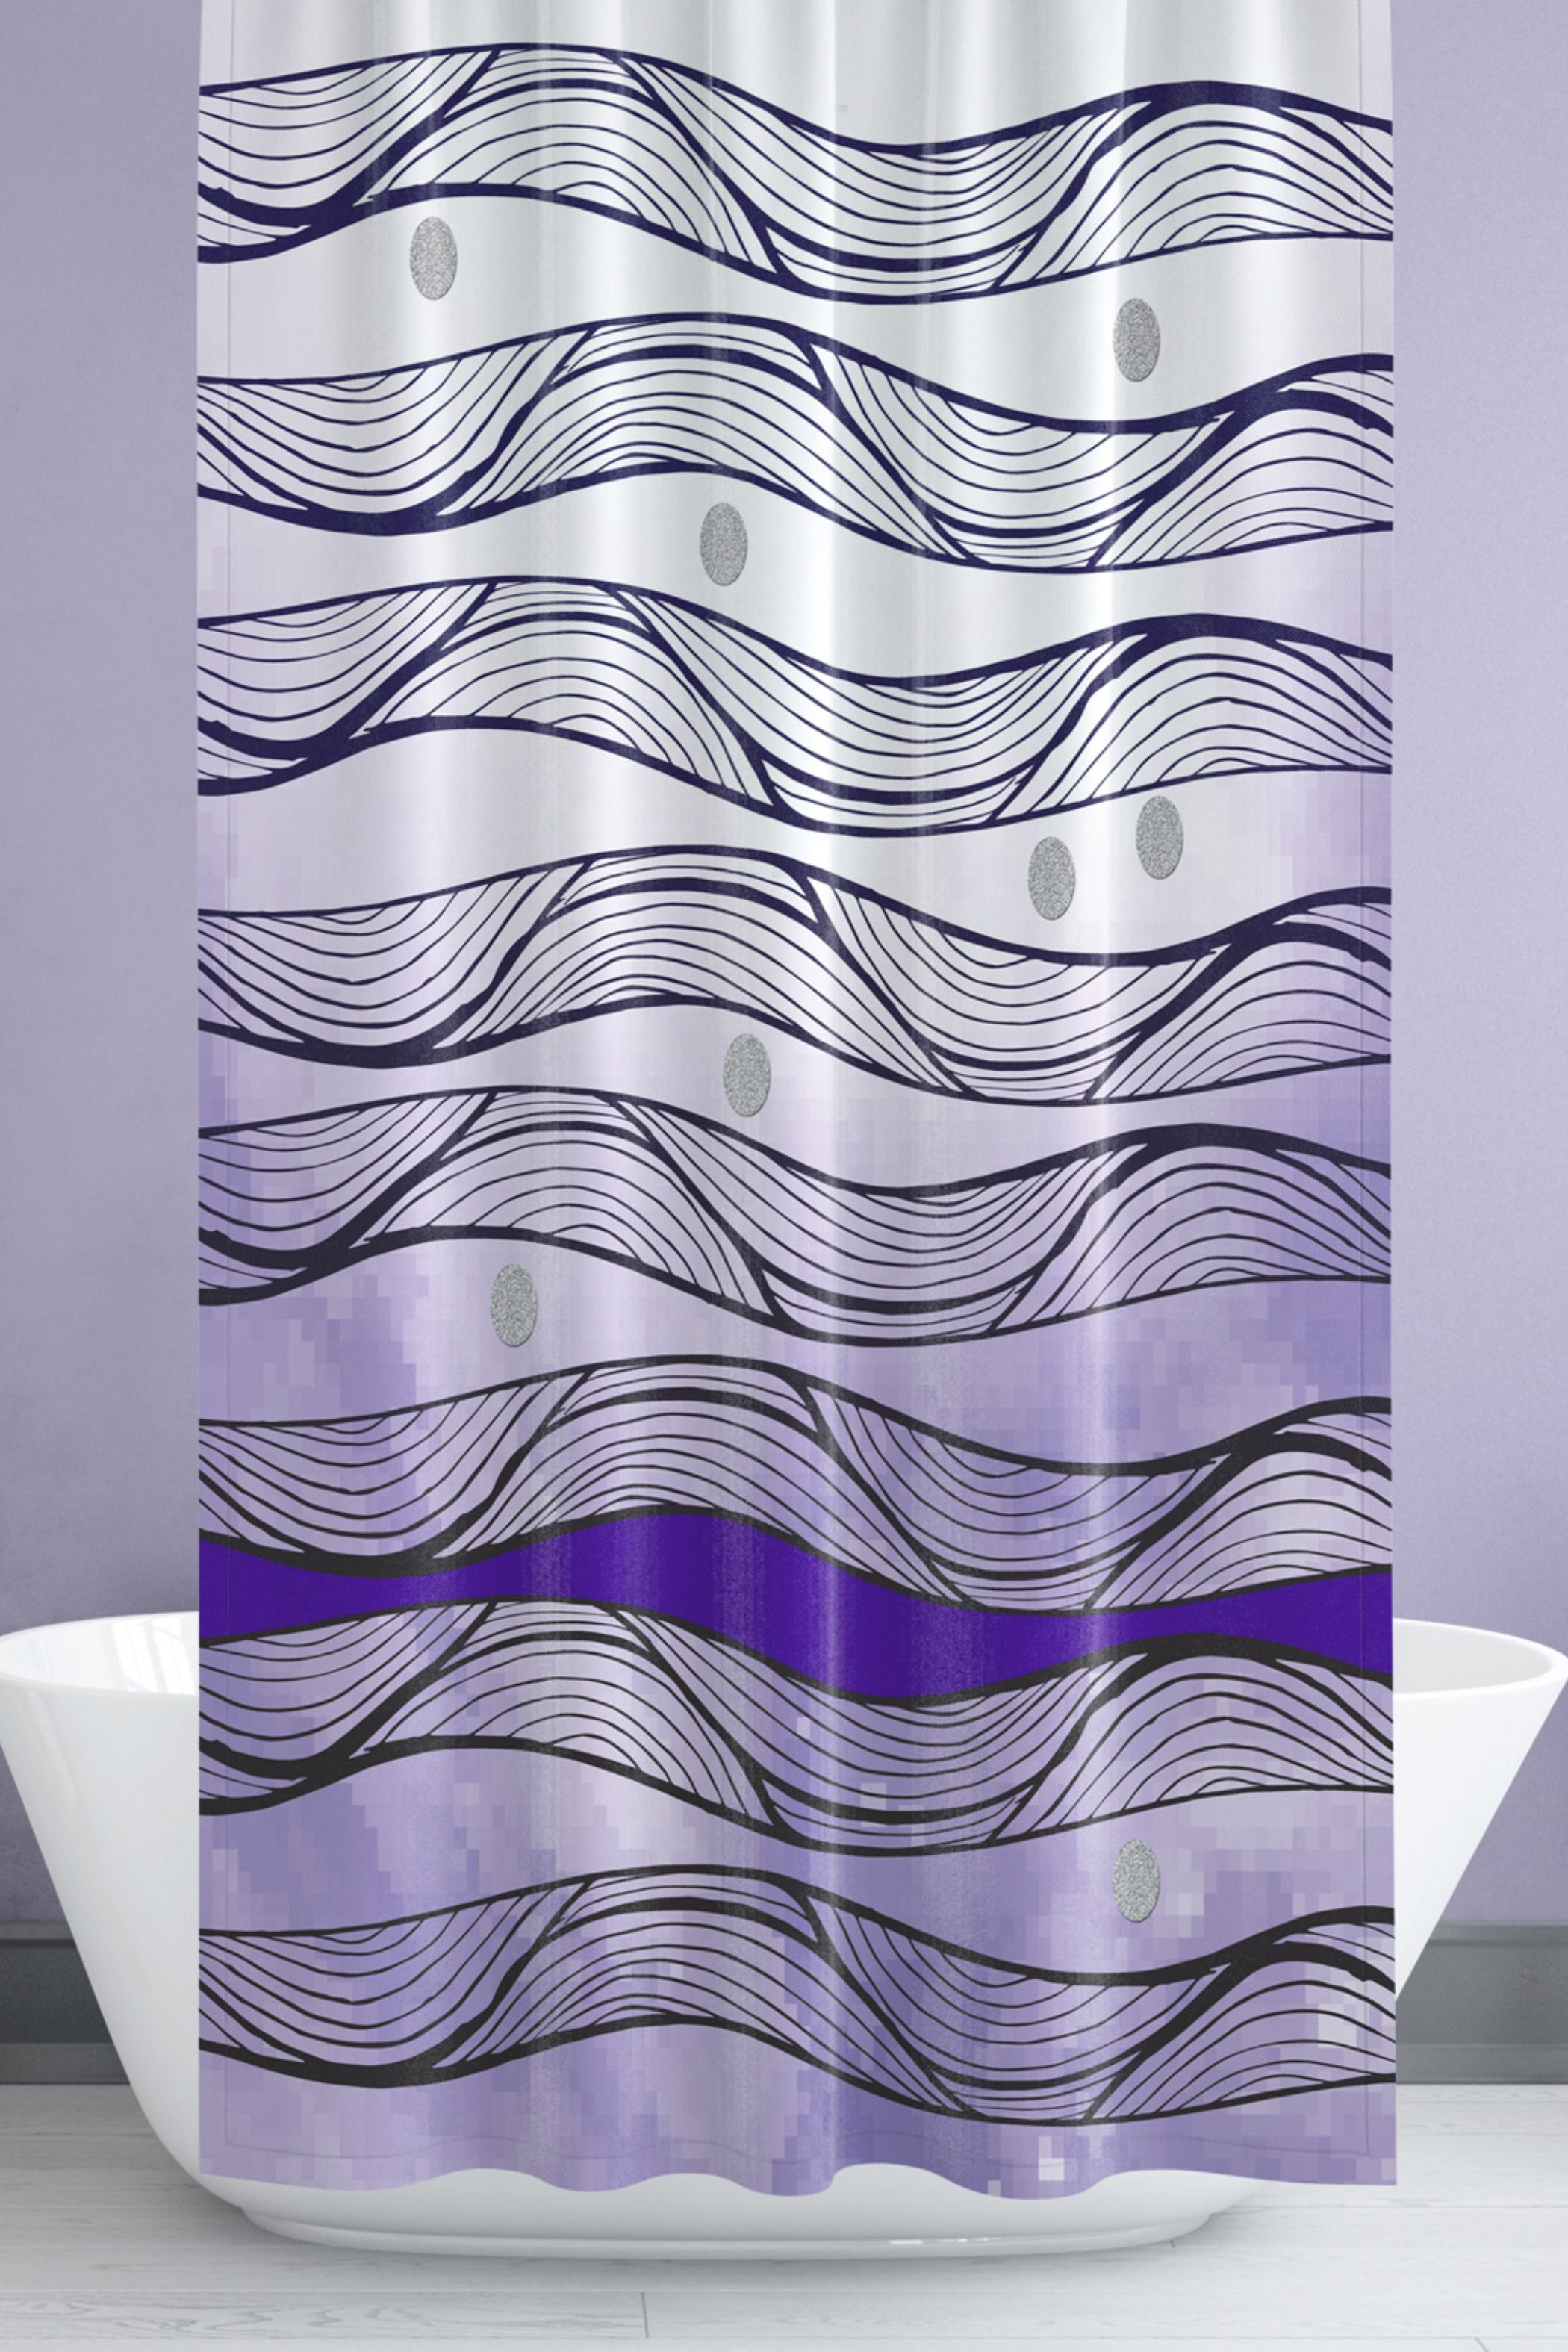 Ombre Shower Curtain Abstract Wave Pattern Buy Here Now Purple